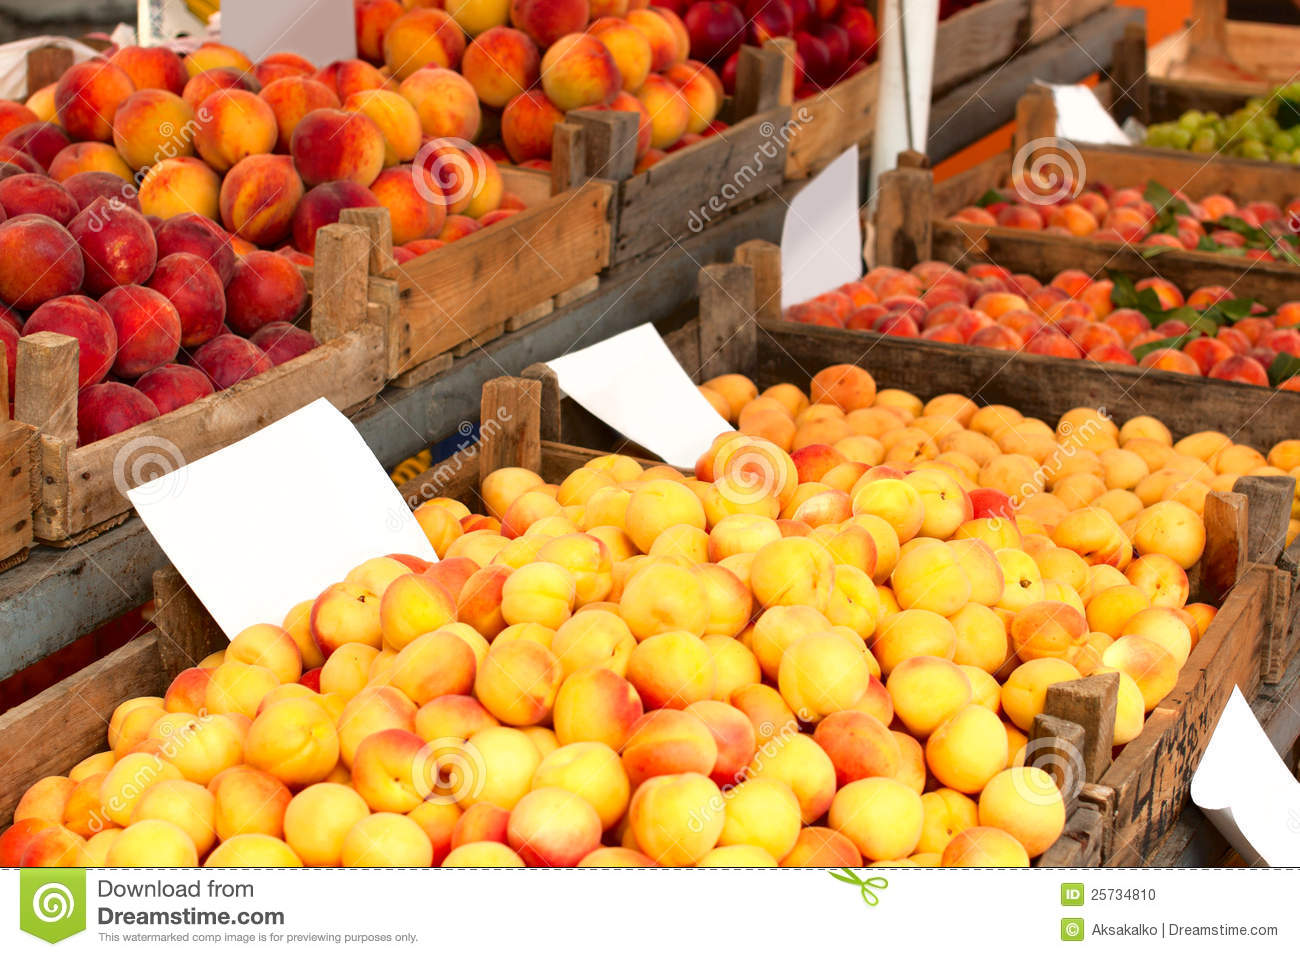 Apricots and peaches at a market